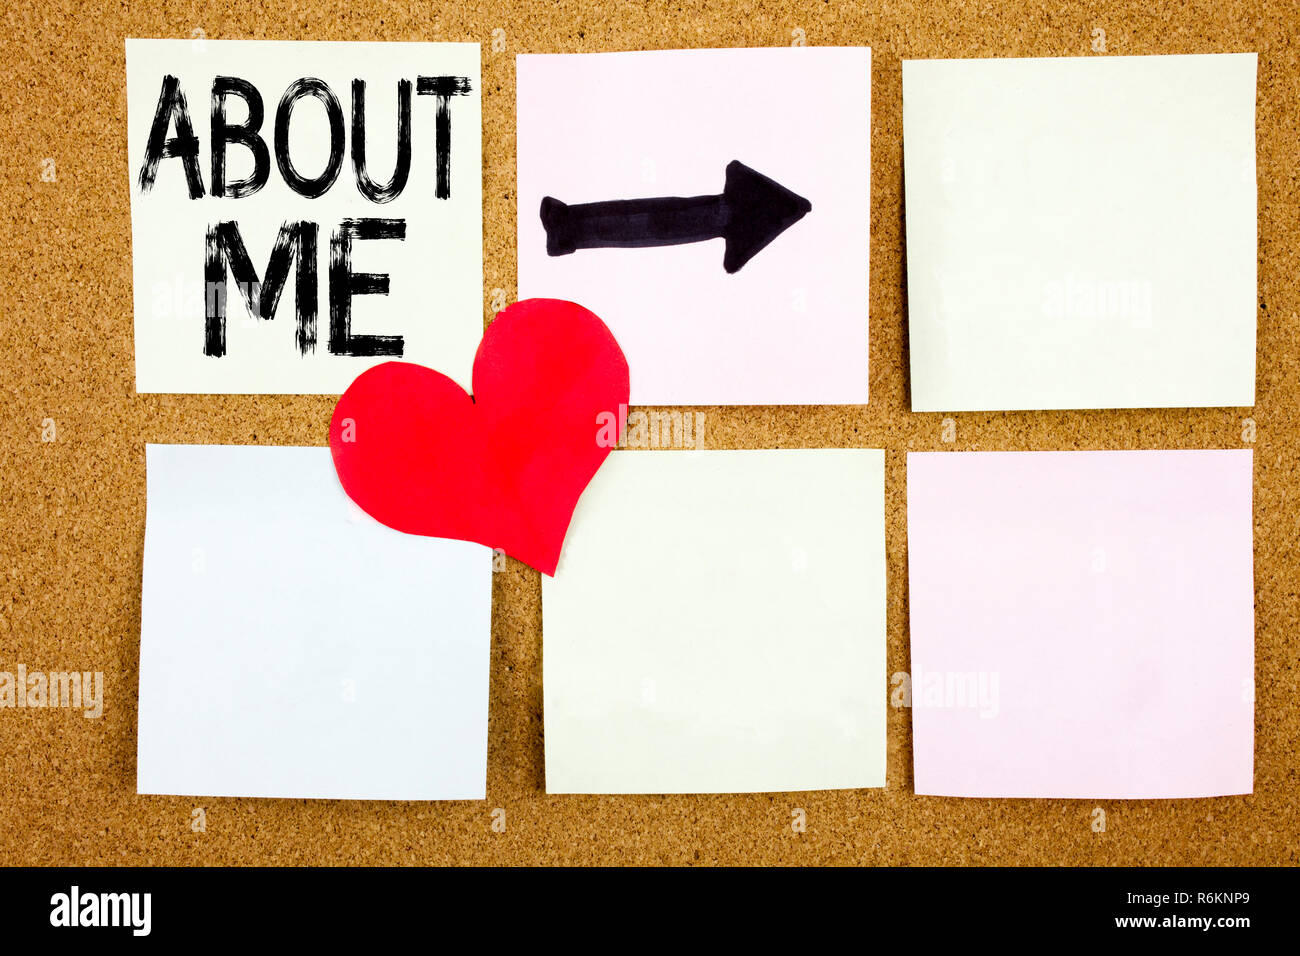 Conceptual hand writing text caption inspiration showing About Me concept for Self Awareness Personal Identity and Love written on sticky note, reminder cork background with copy space - Stock Image